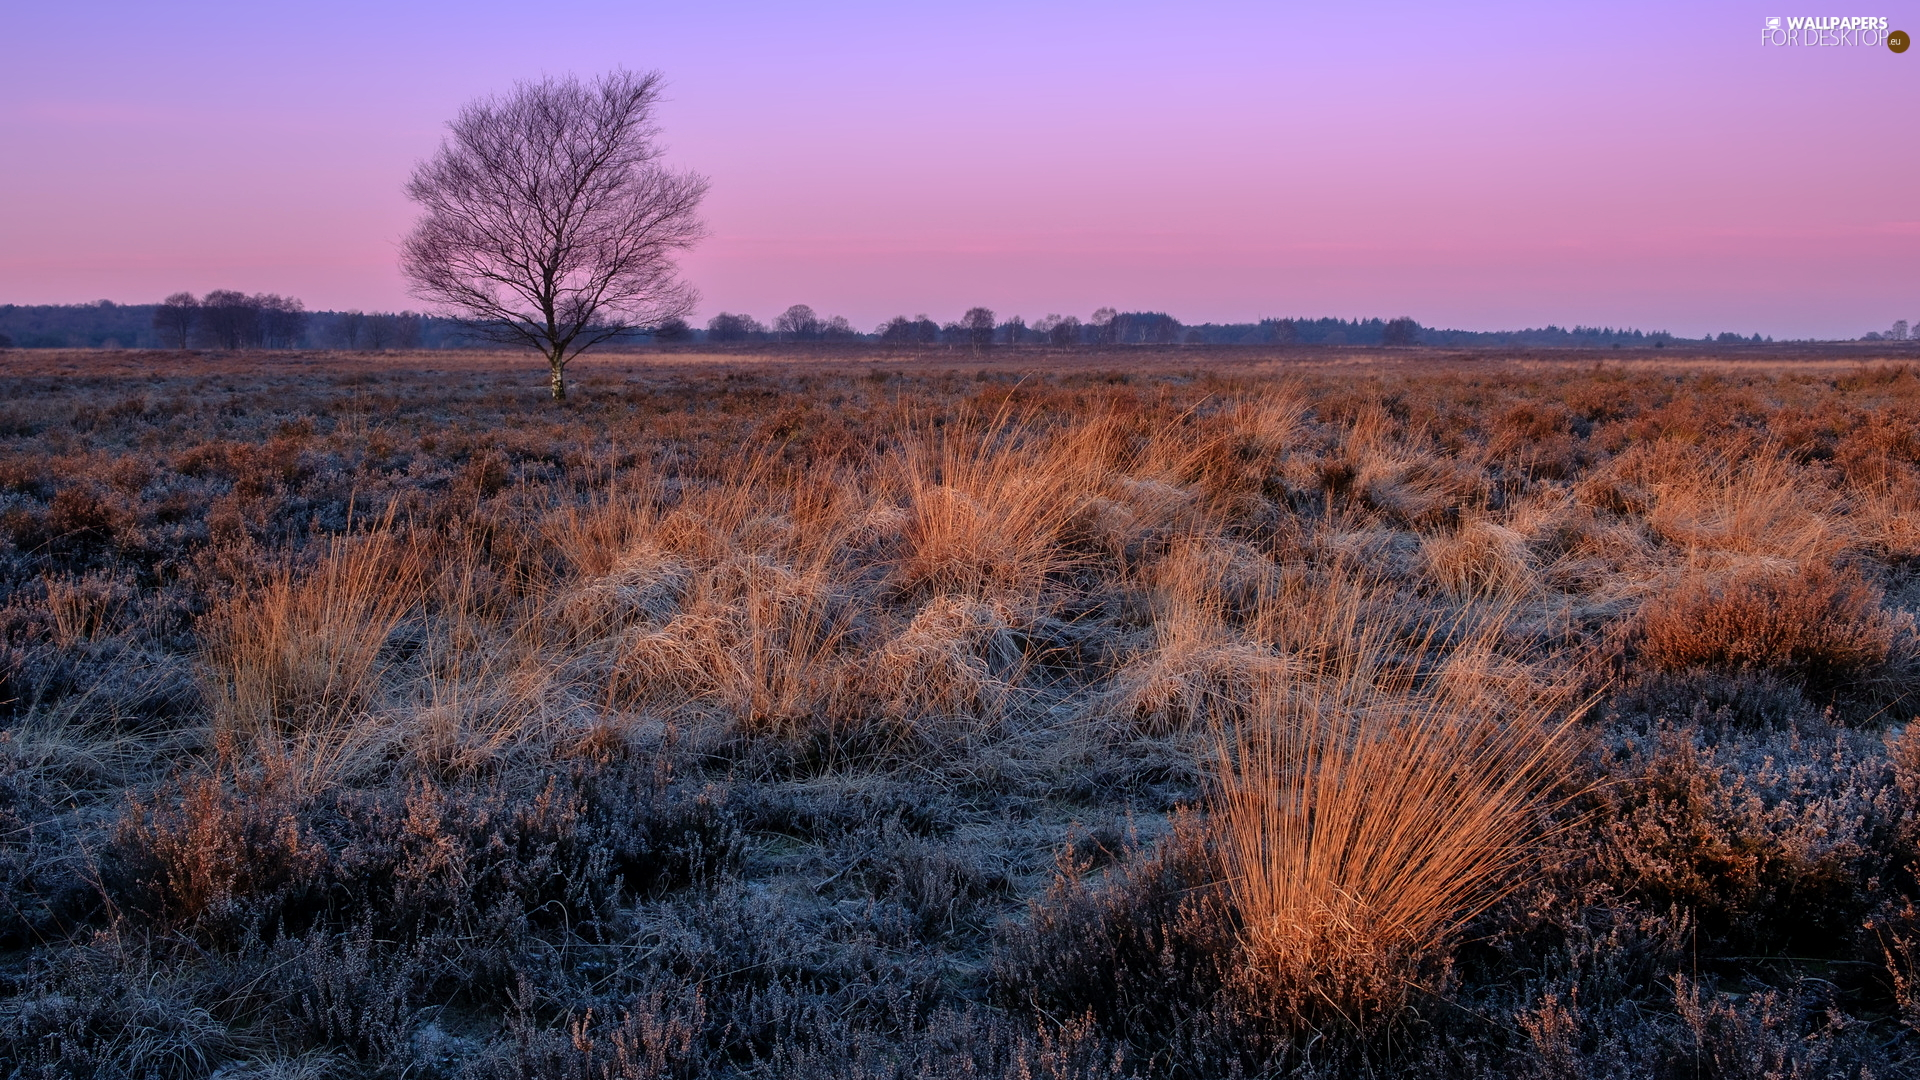 grass, medows, trees, Tufts, field, White frost, Sunrise